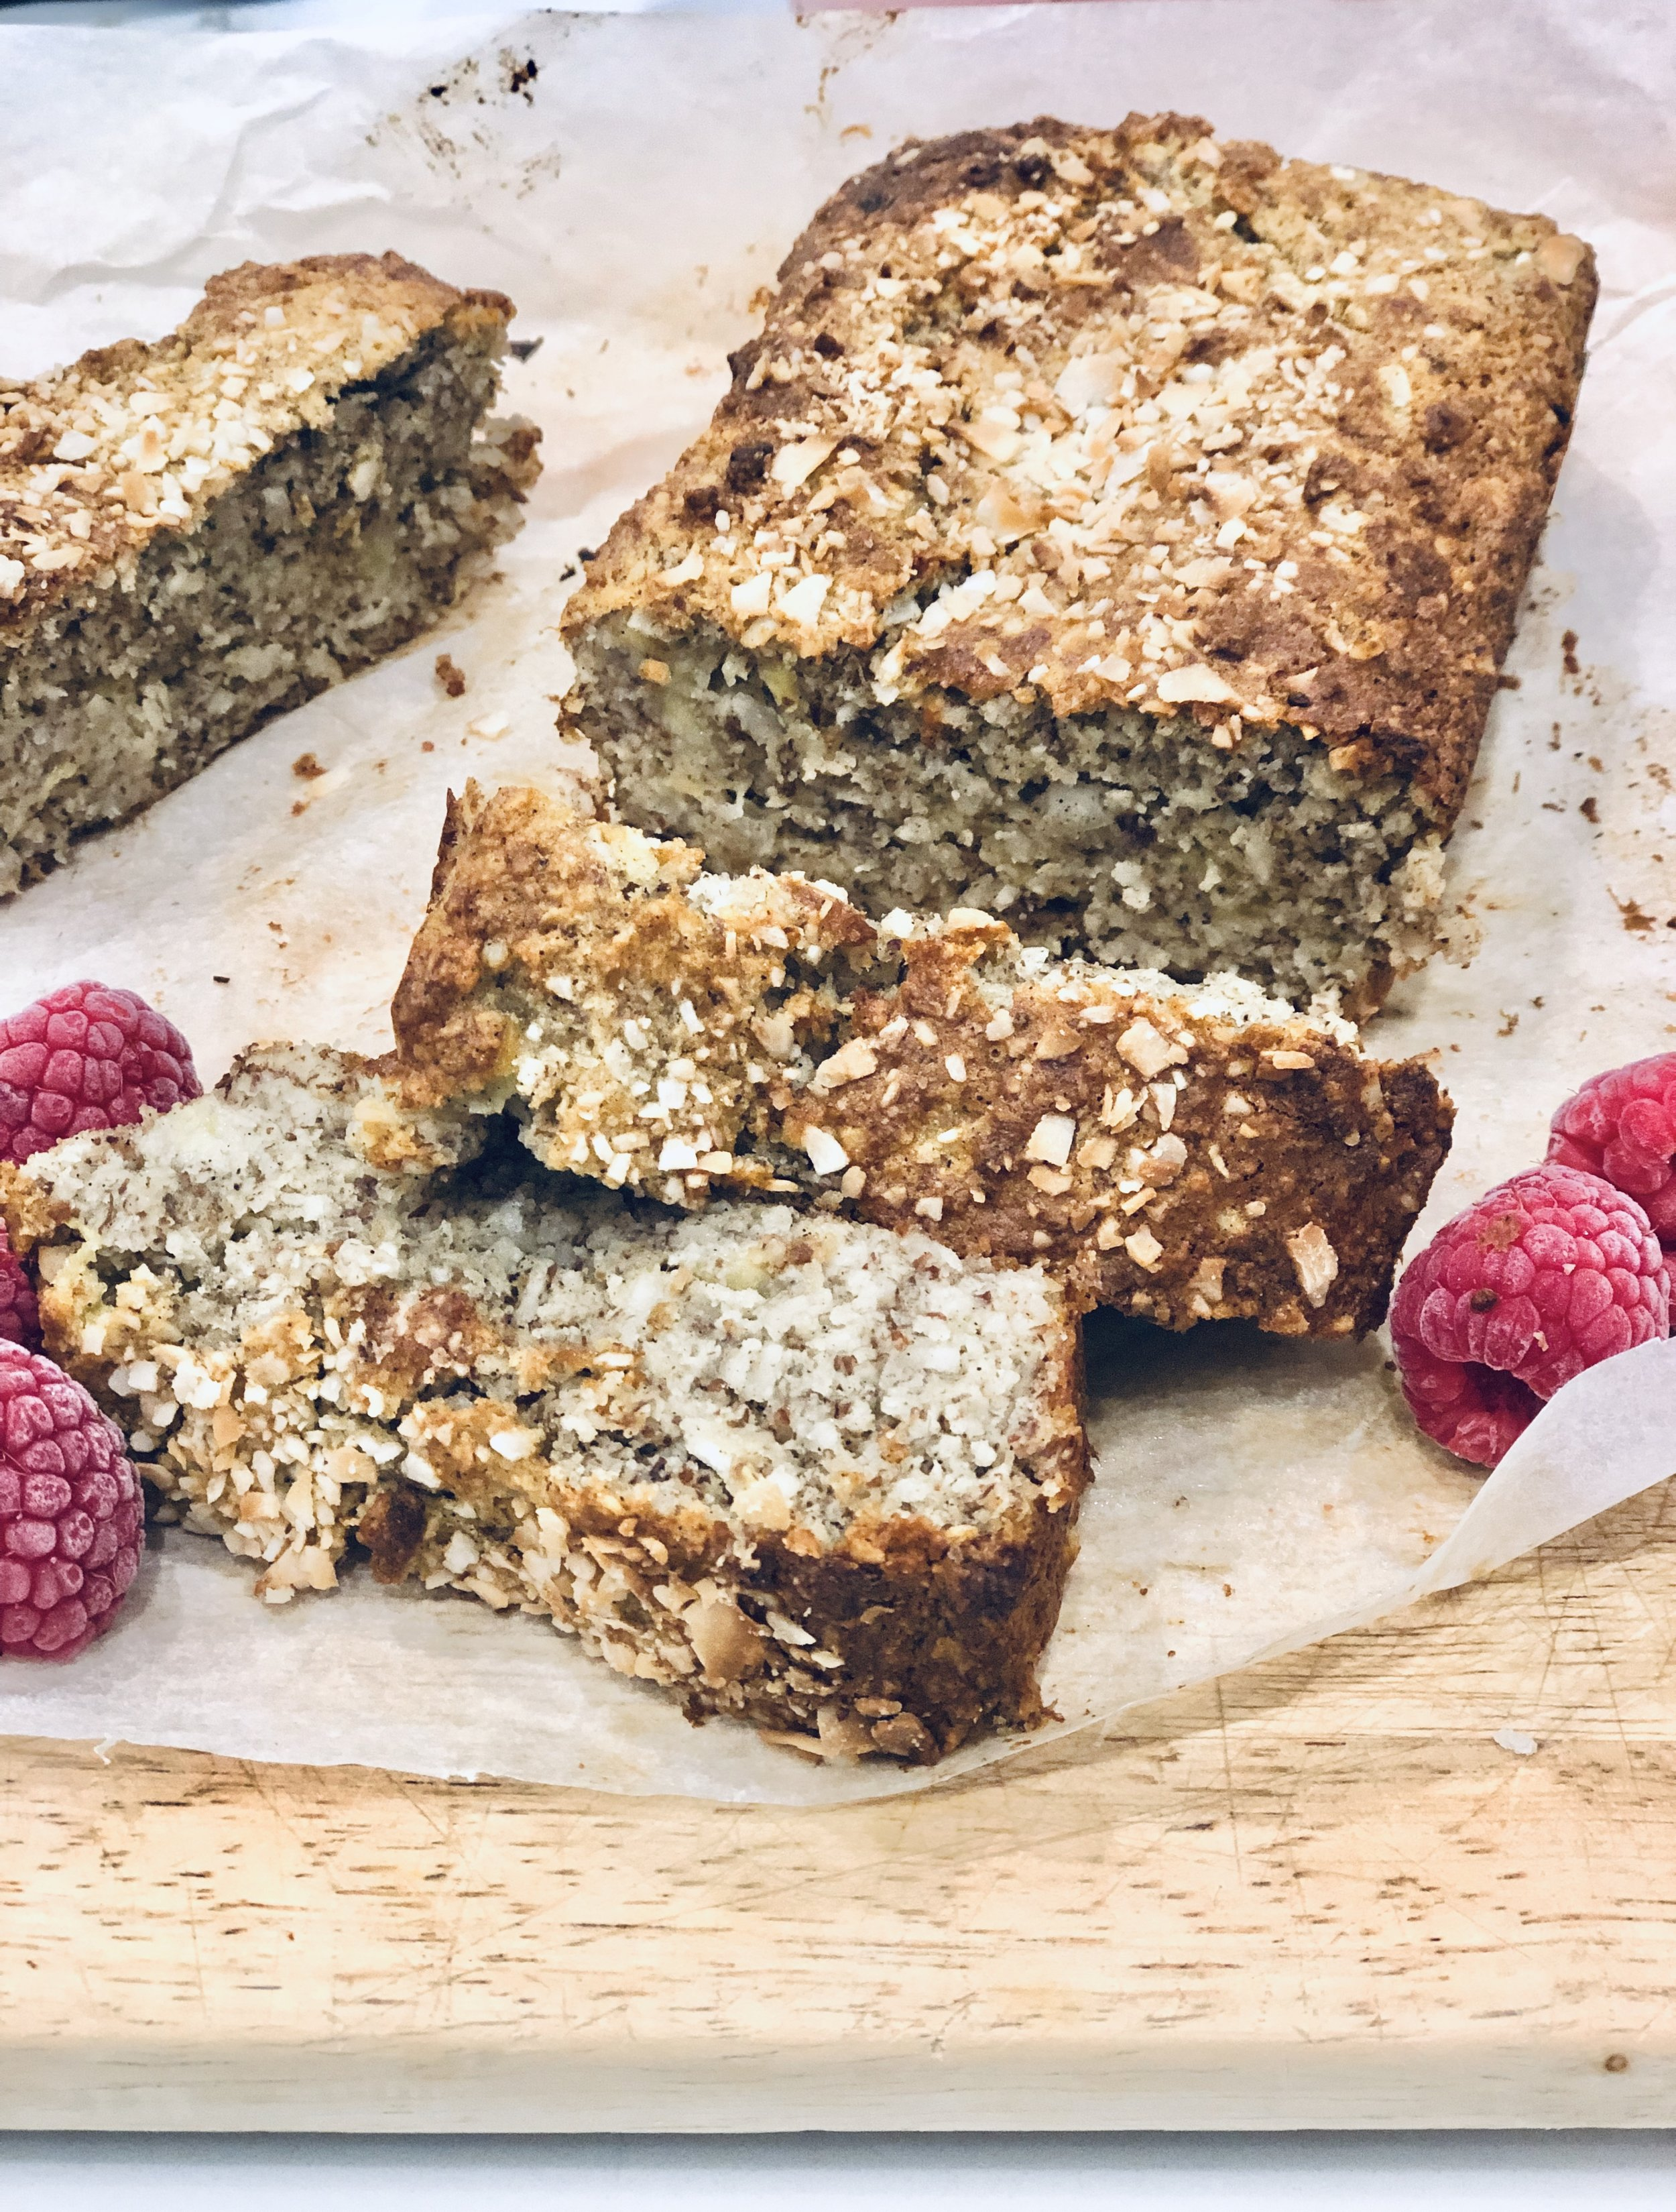 - Raise your hand if you want a virtual piece of my banana bread! 🙋😋 The recipe is gluten-free, refined sugar-free, super easy to make and of course delicious!Ingredients 225g of Bananas, mashed 2 Egg Sweetener to taste, I used 1 tsp @nirvanahealthproducts pure ground stevia 1 1/2 cups of Almond meal 2 tsp Baking powder 1/2 tsp Salt 1 tsp ground vanilla I used @terramadreorganics 1/4 cup Coconut oil Dash of Almond milk (depends on consistency of mixture) I used @pureharvest Method Grease and line a loaf tin with baking paper. Mash bananas in a mixing bowl then add 2 eggs. Combine with a fork then add all dry ingredients. Mix together, adding dashes of almond milk if mixture is too thick. Pour into lined loaf tray. Bake in preheated oven at 170 degrees fan forced for about 40 minutes. Enjoy with a scoop of @coyo_organic coconut yogurt and fresh berries.